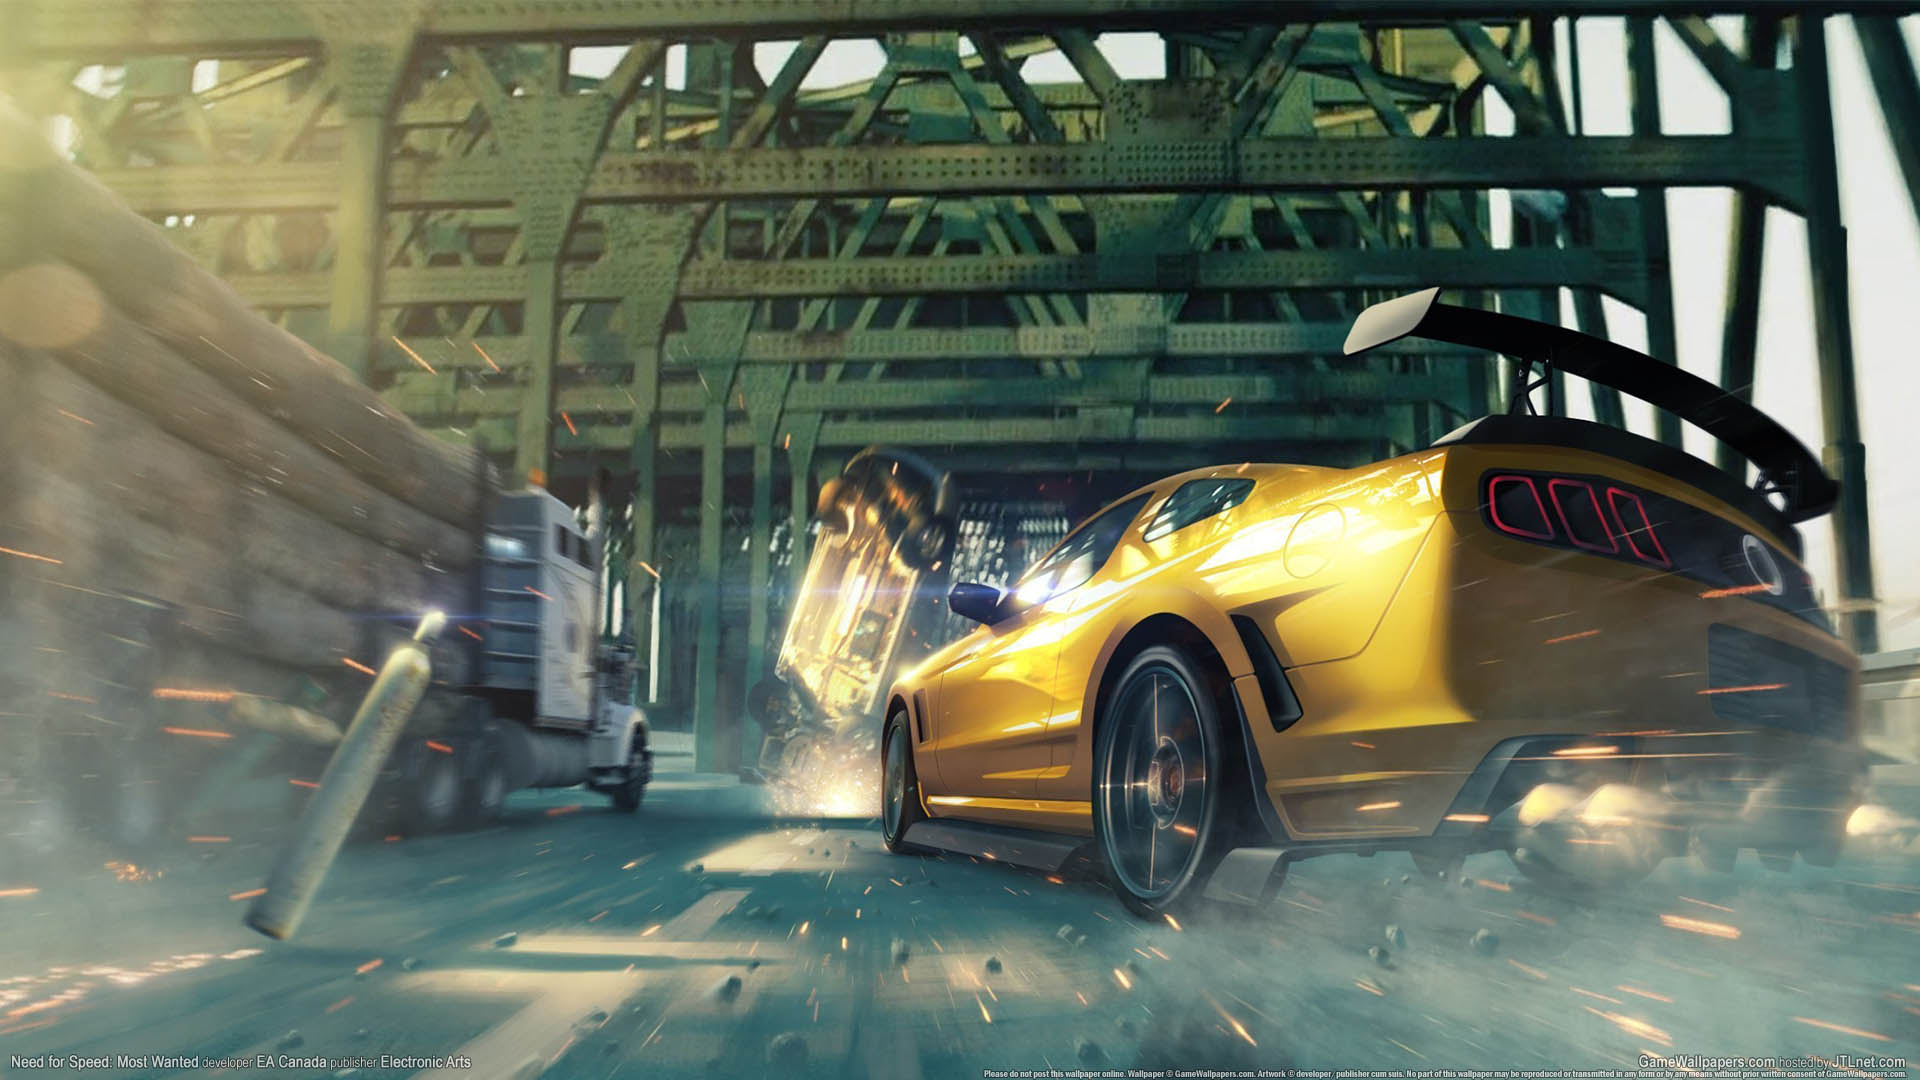 Need for Speed - Most Wanted achtergrond 07 1920x1080